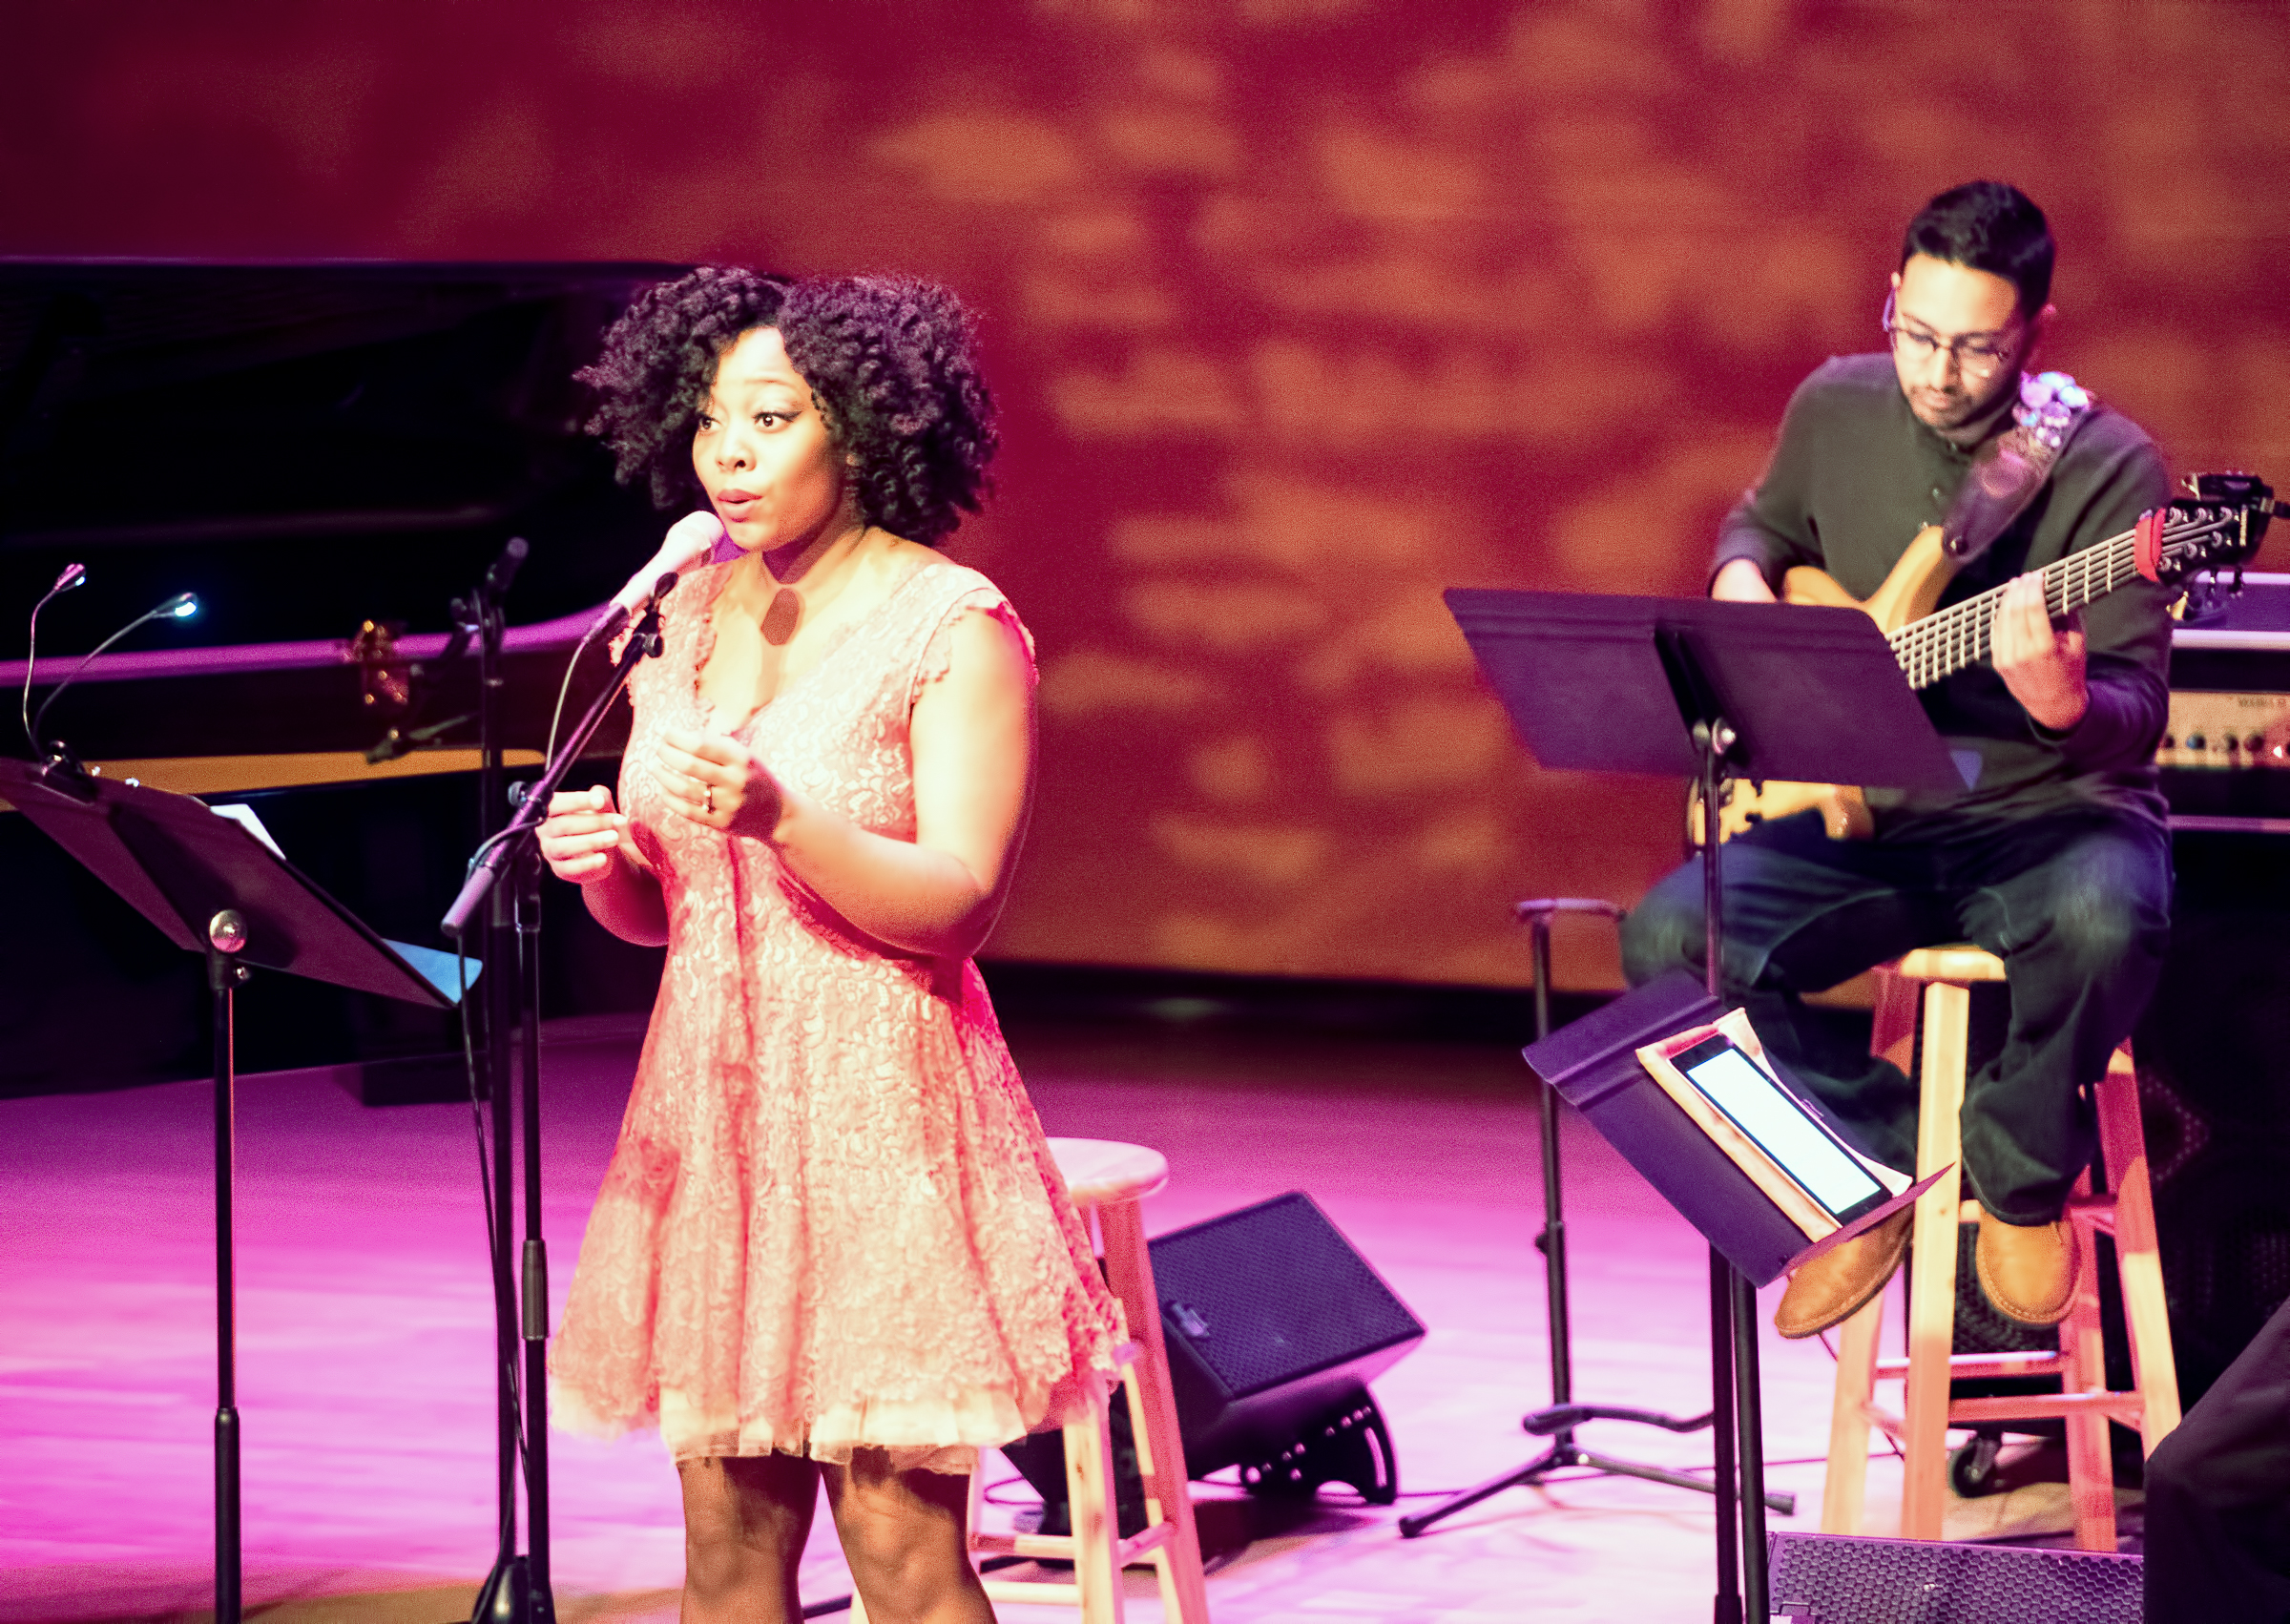 Alicia Olatuja And Ben Shepherd With Billy Childs' Reimagining Laura Nyro At The Musical Instrument Museum (mim) In Phoenix